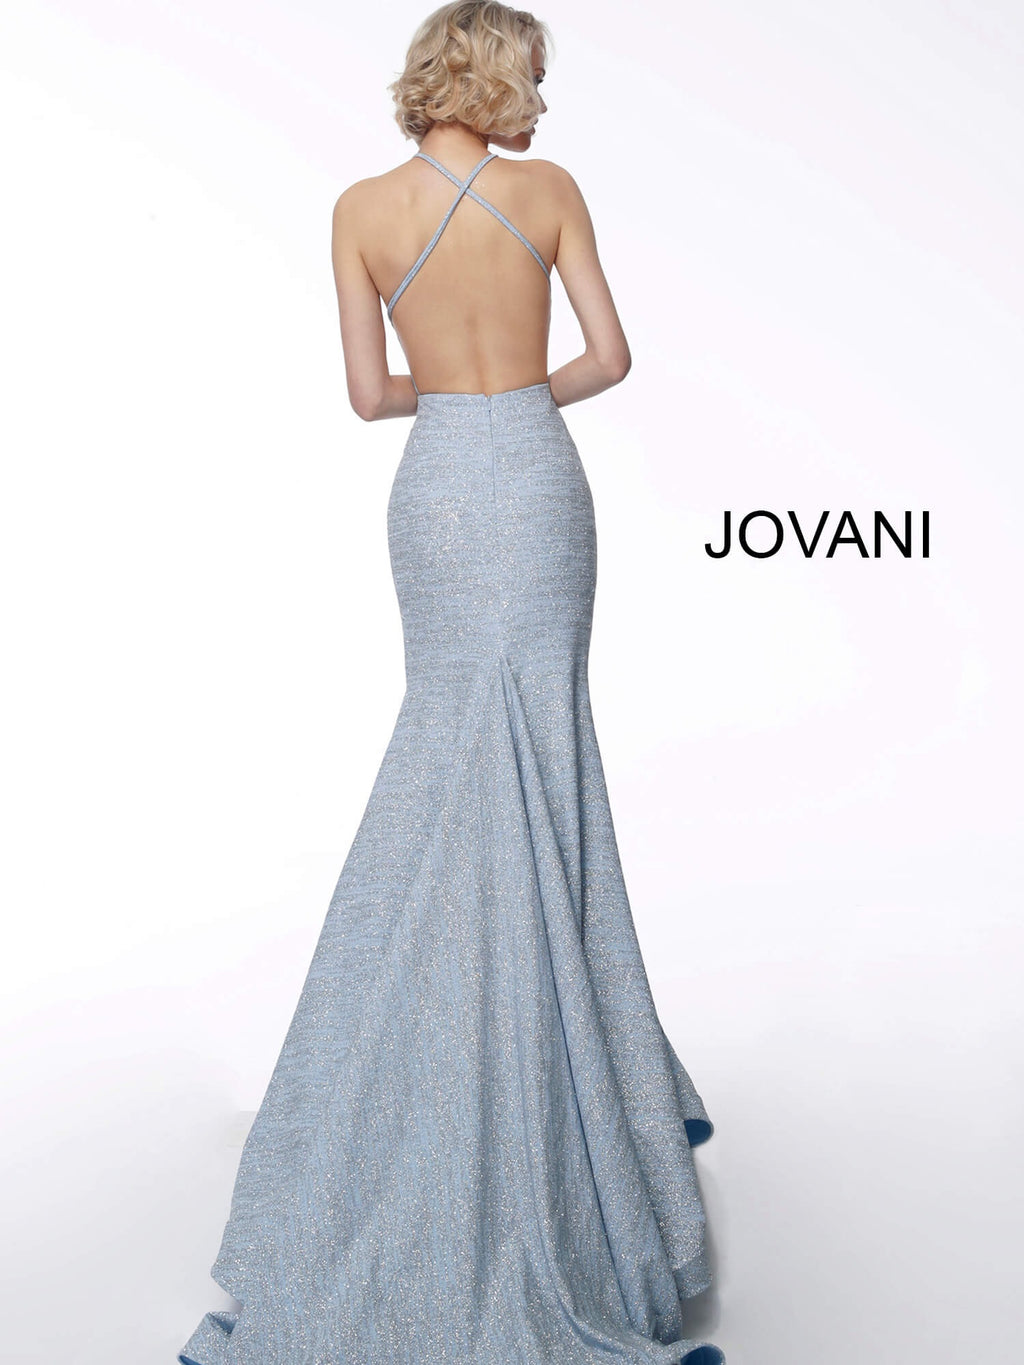 JOVANI 65416 Backless Evening Dress